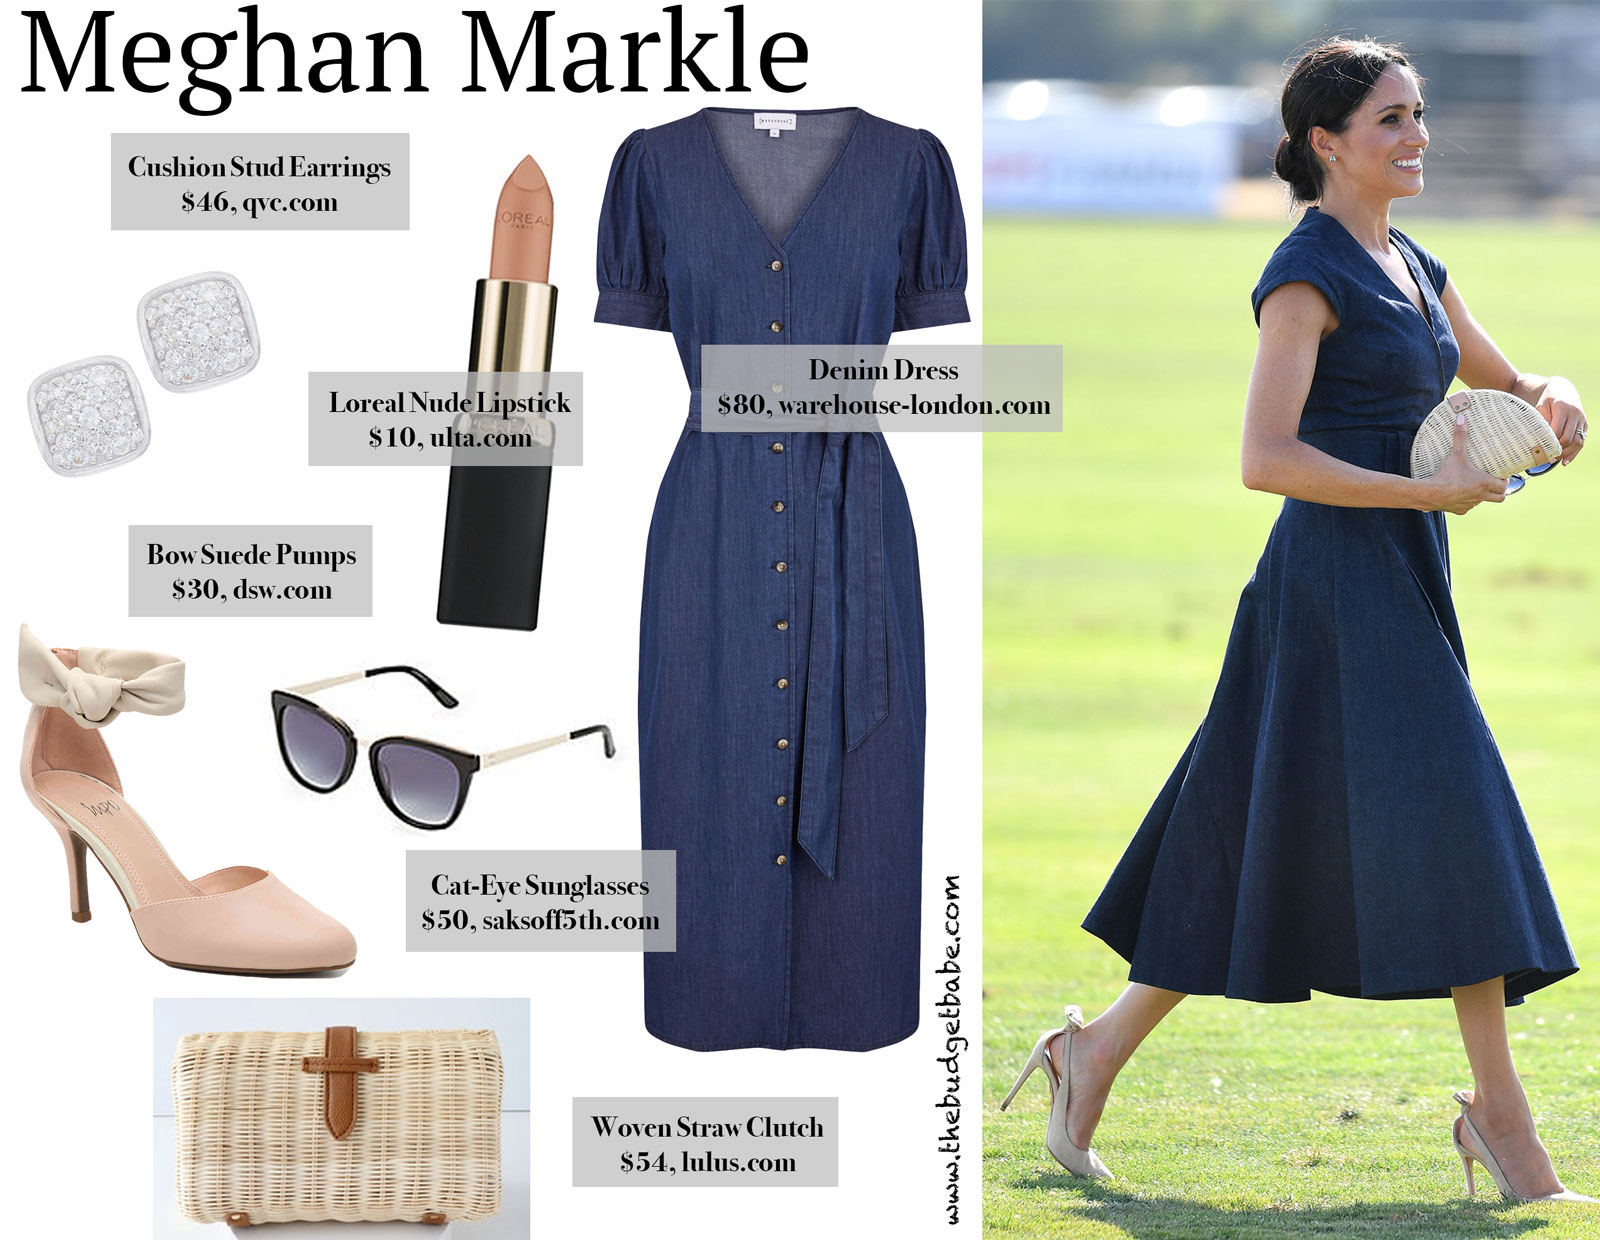 Meghan Markle's Denim Dress and Bow Suede Heels Look for Less